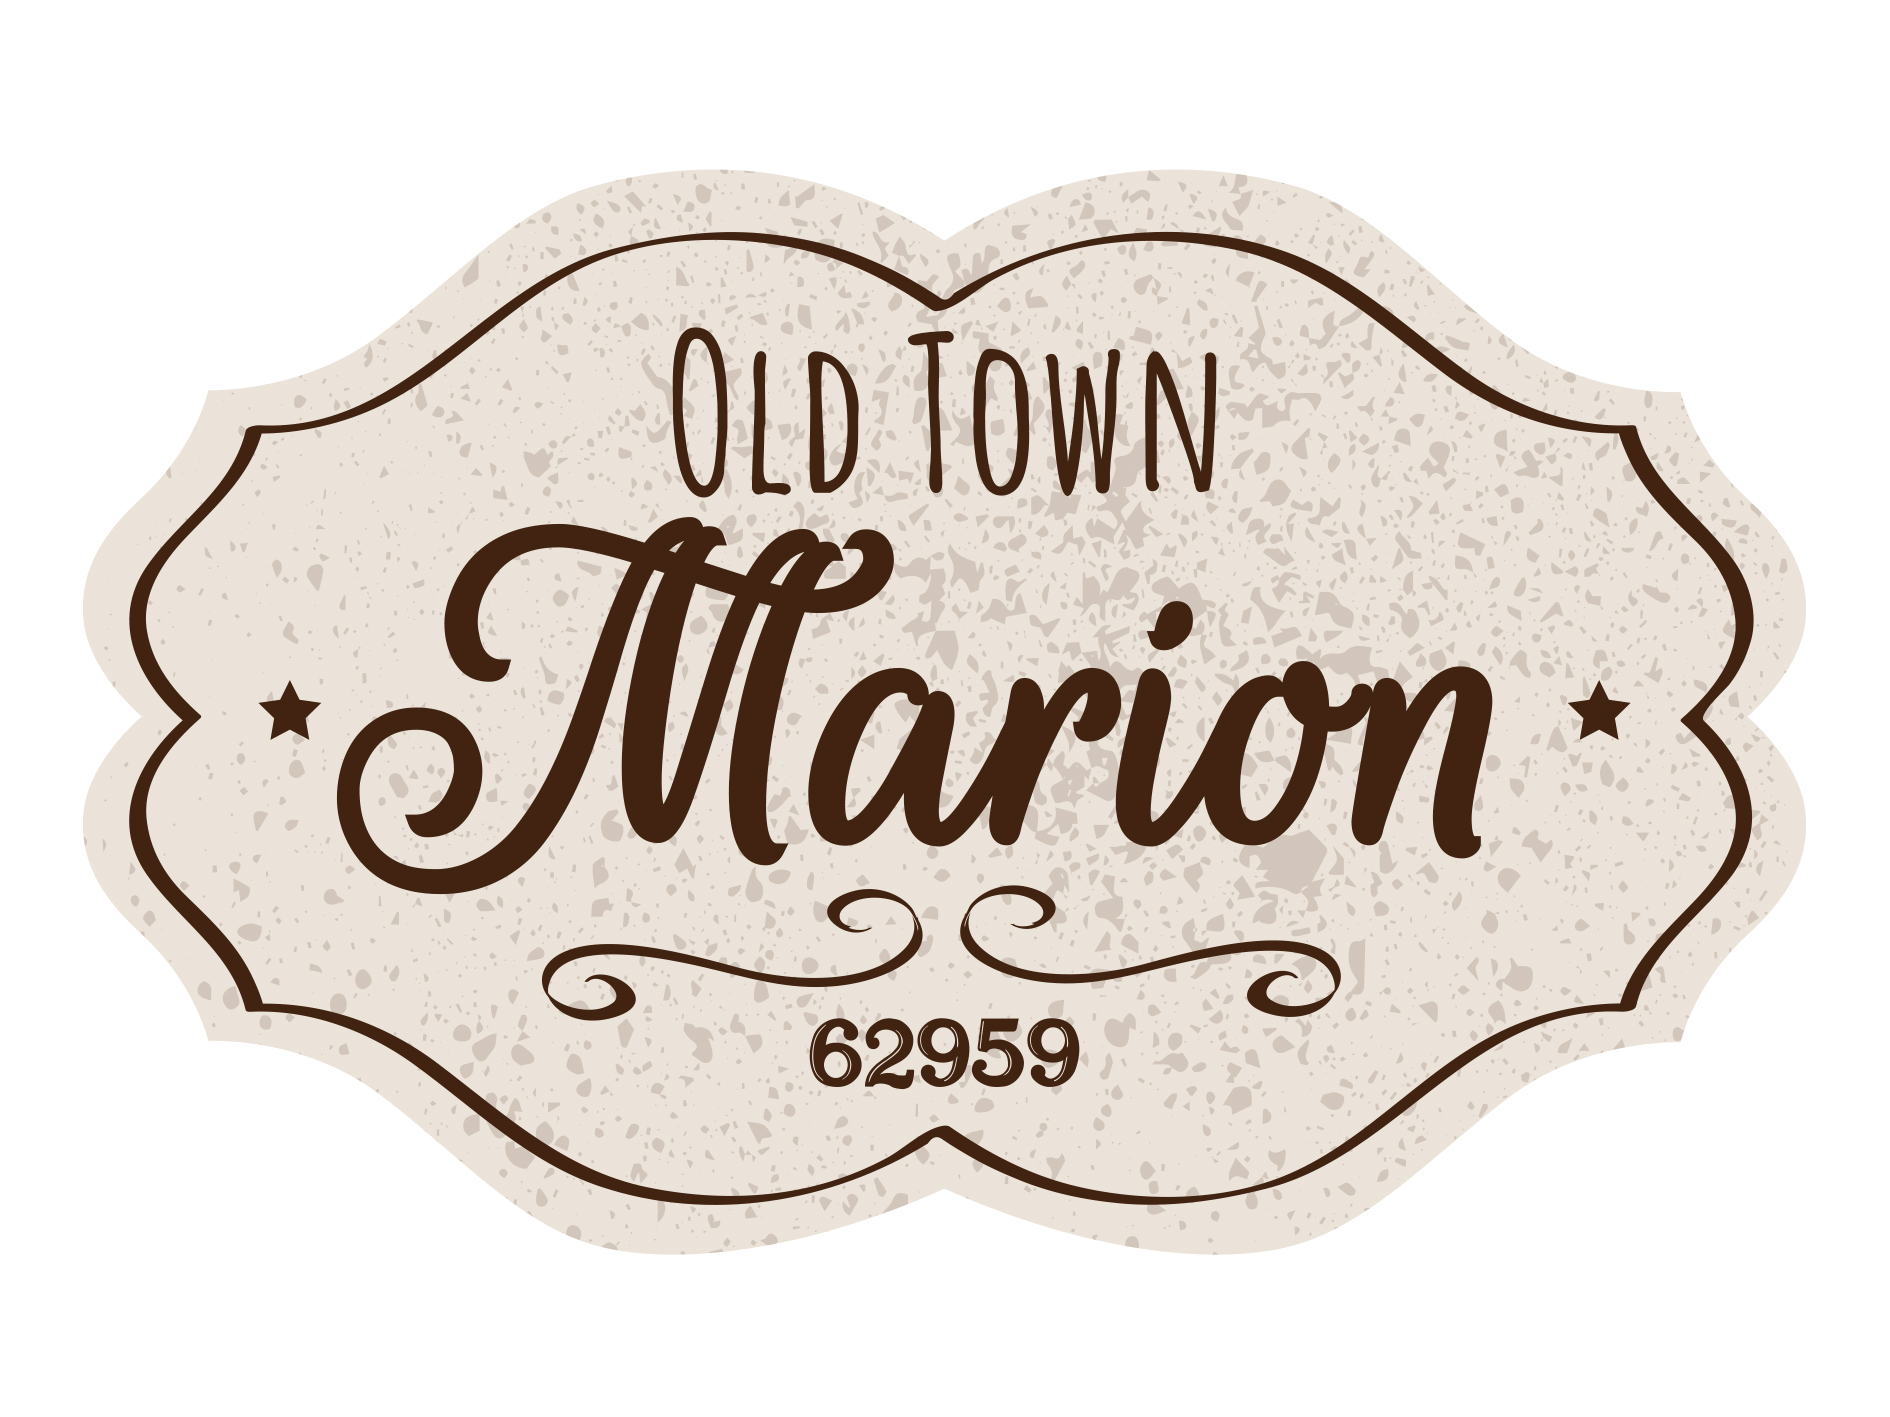 Andy---Old-Town-Marion-logo-final-color.